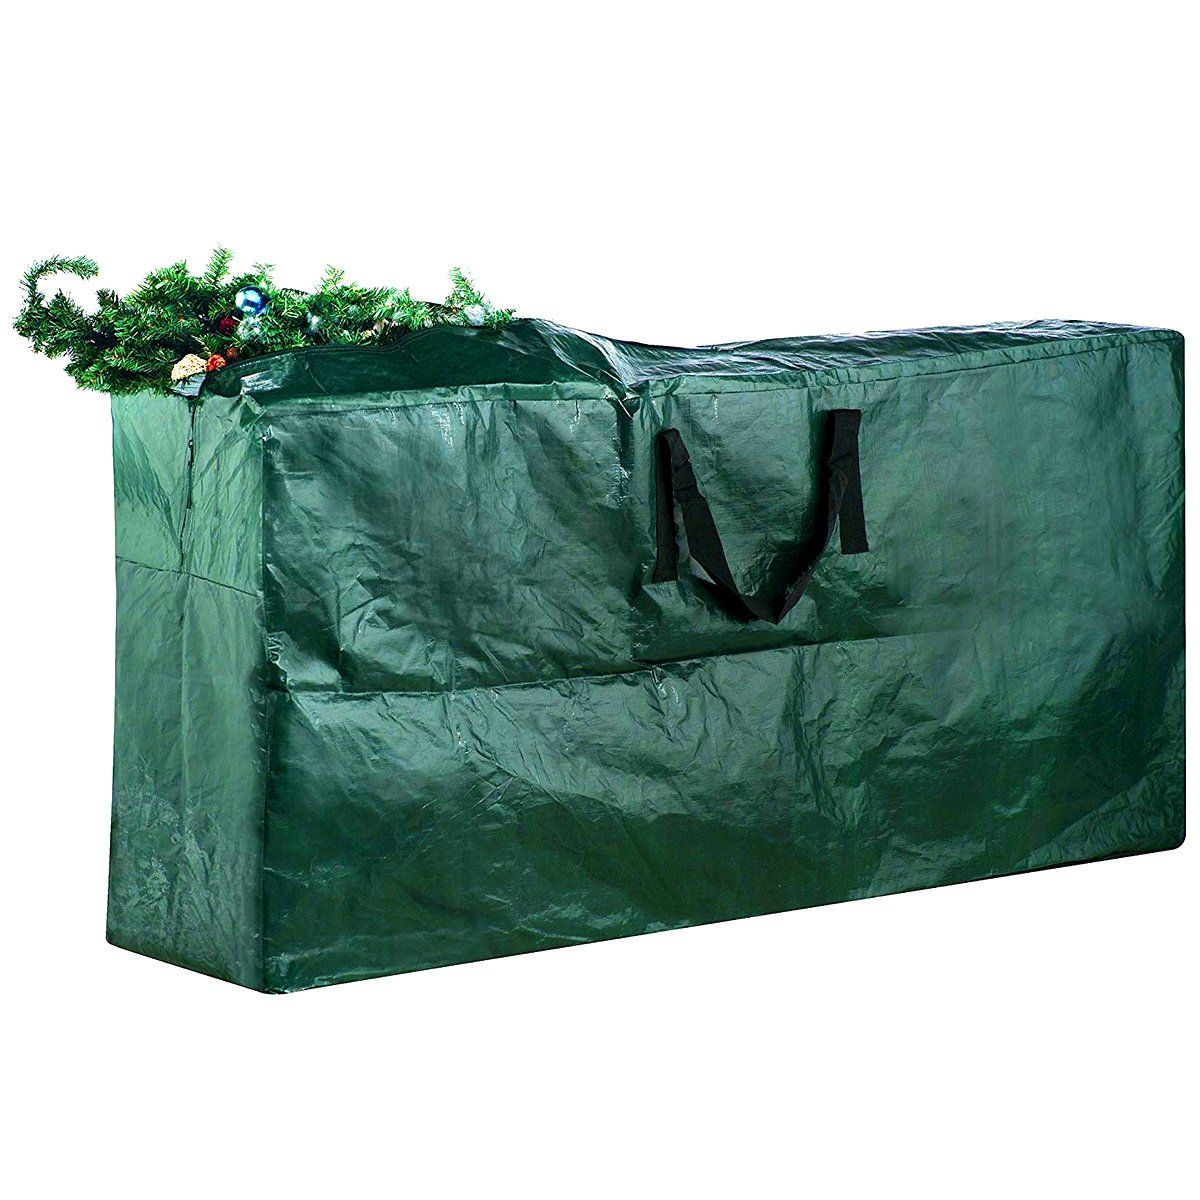 Christmas Tree Storage Bin Adorable Christmas Tree Storage Bag Tree Storage Container Holiday Garland Or Design Ideas